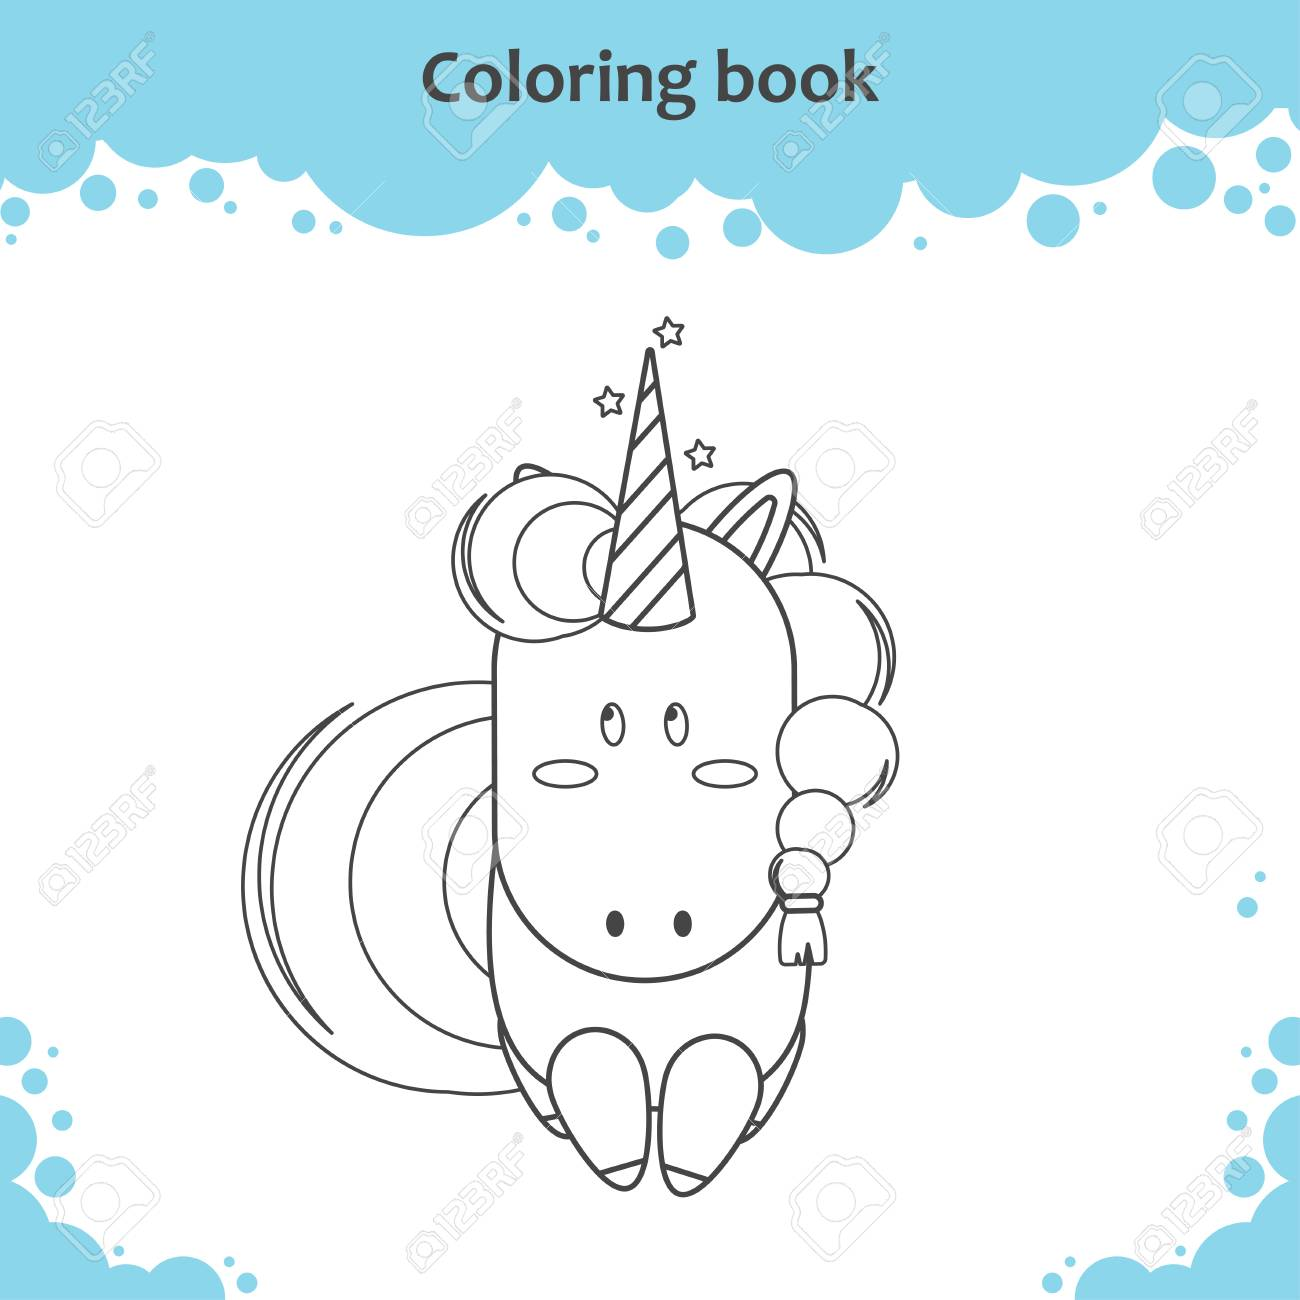 Color The Cute Cartoon Little Unicorn Coloring Page For Kids